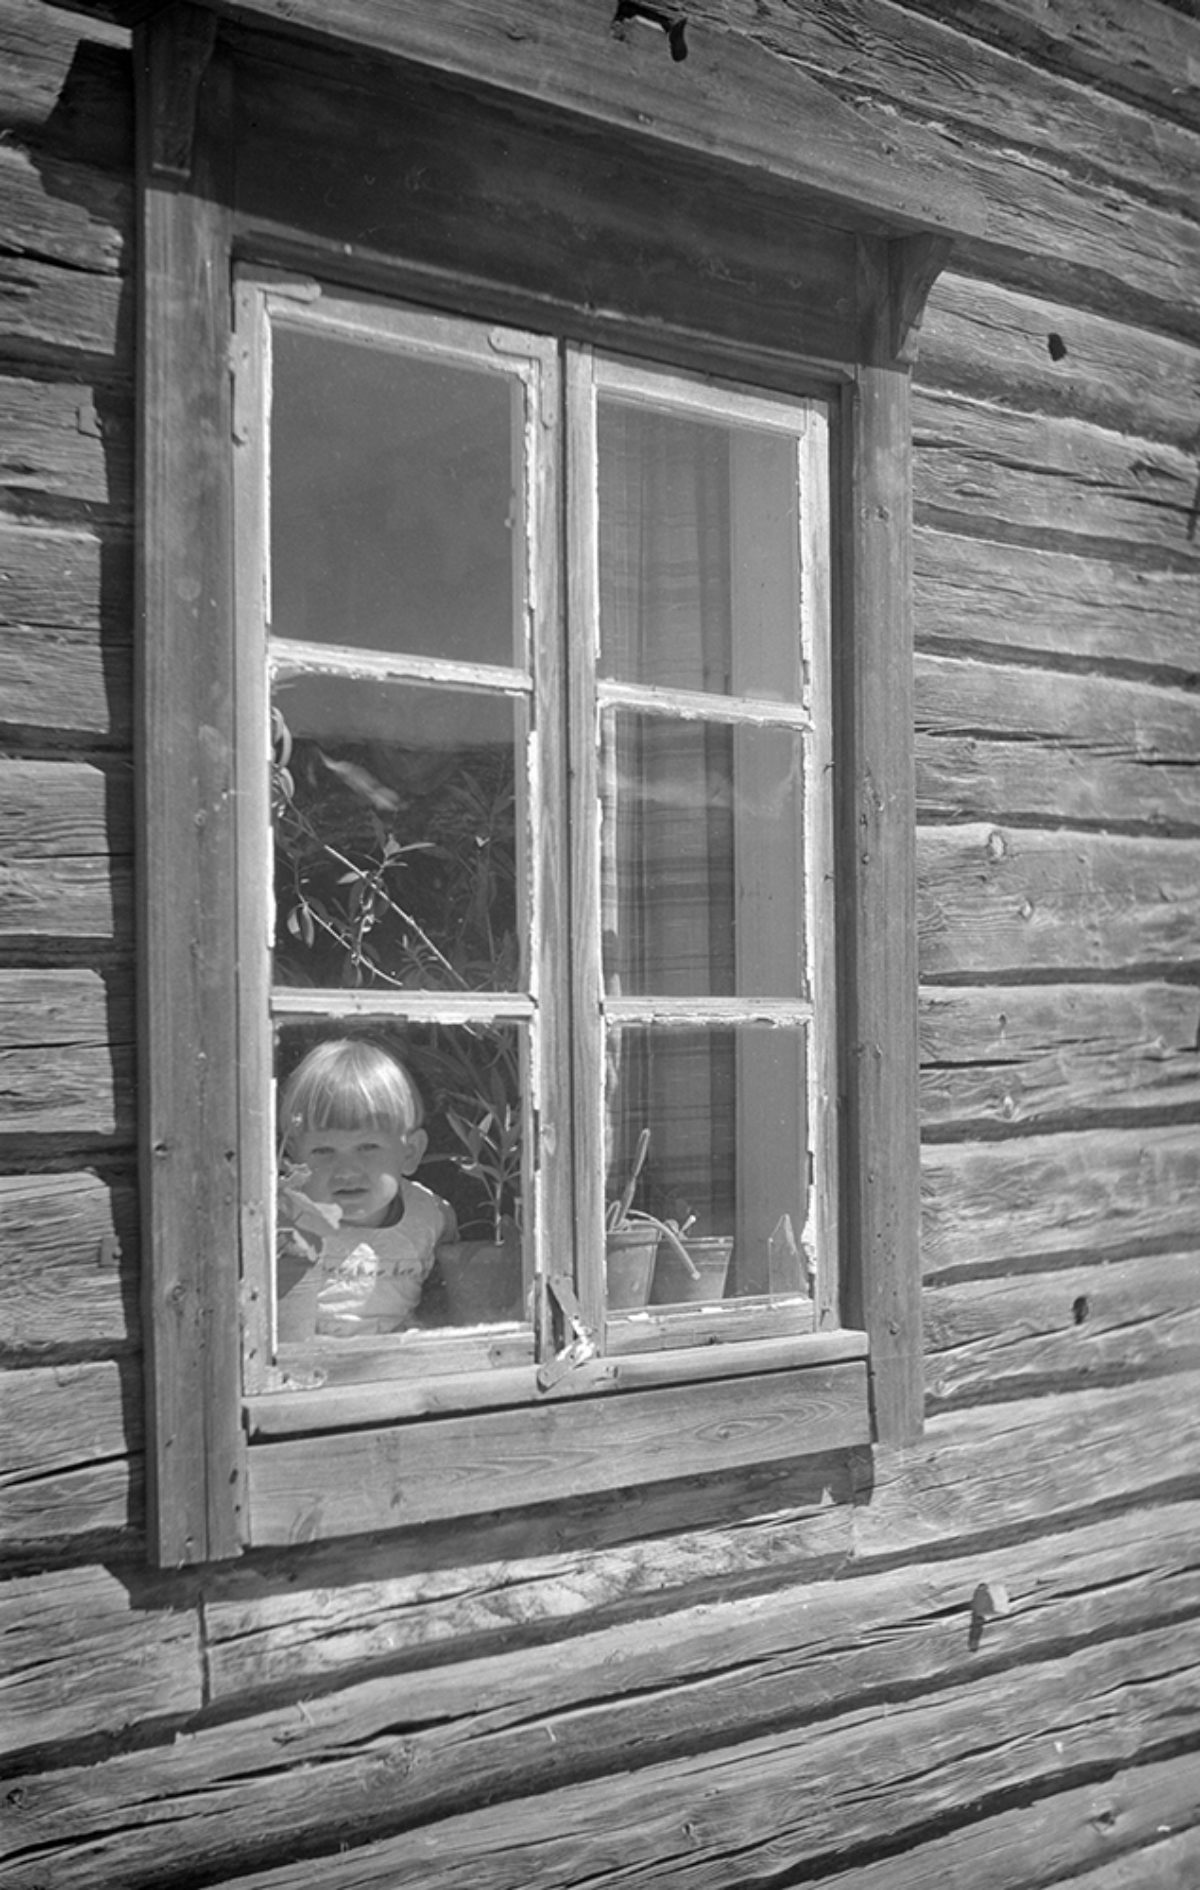 A child in a window in Hartola. Photo: Matti Poutvaara / Picture Collections of the Finnish Heritage Agency